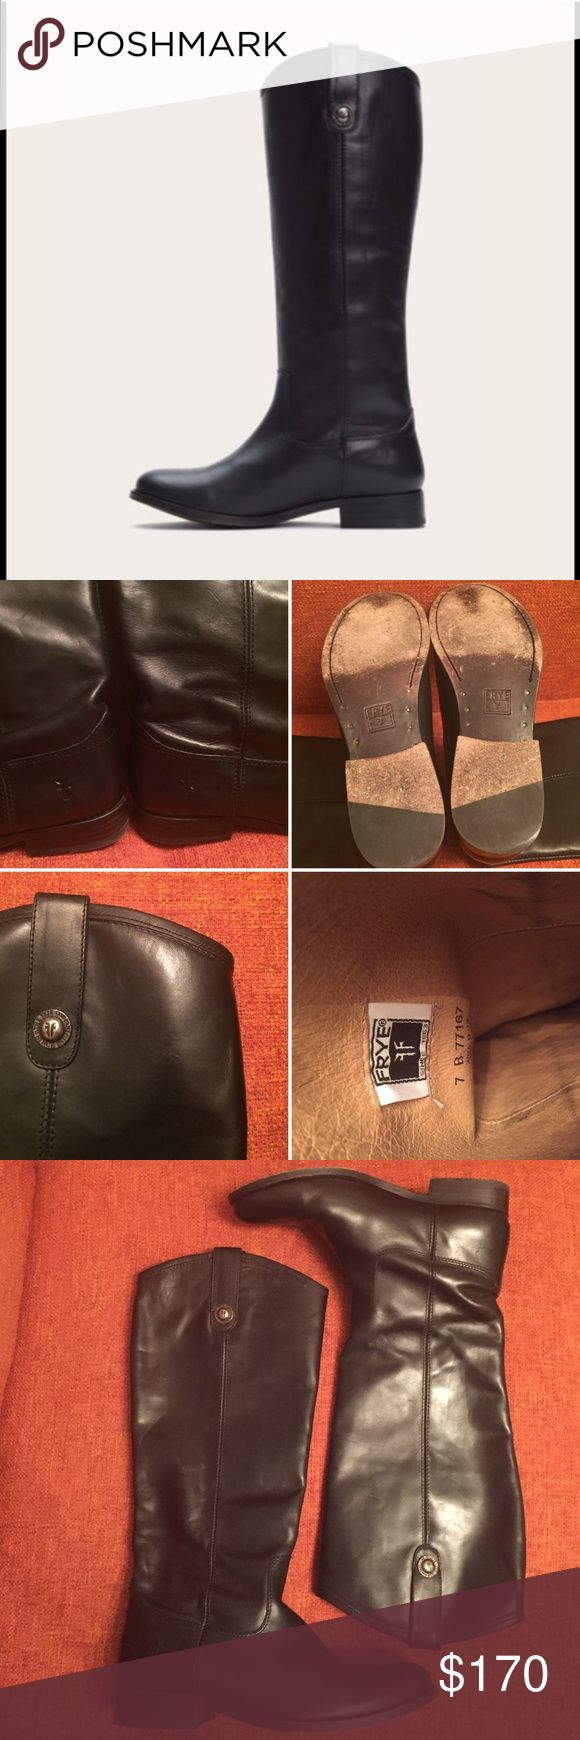 🌿SALE🌿 Frye Mellisa Button Boots Signature Melissa buttons distinguish this knee-high boot from everyone else. A wardrobe must-have, The Melissa was designed to go with your entire closet. These have been worn only a few times and are in amazing condition. Still has the smell of fresh leather. Frye Shoes Heeled Boots